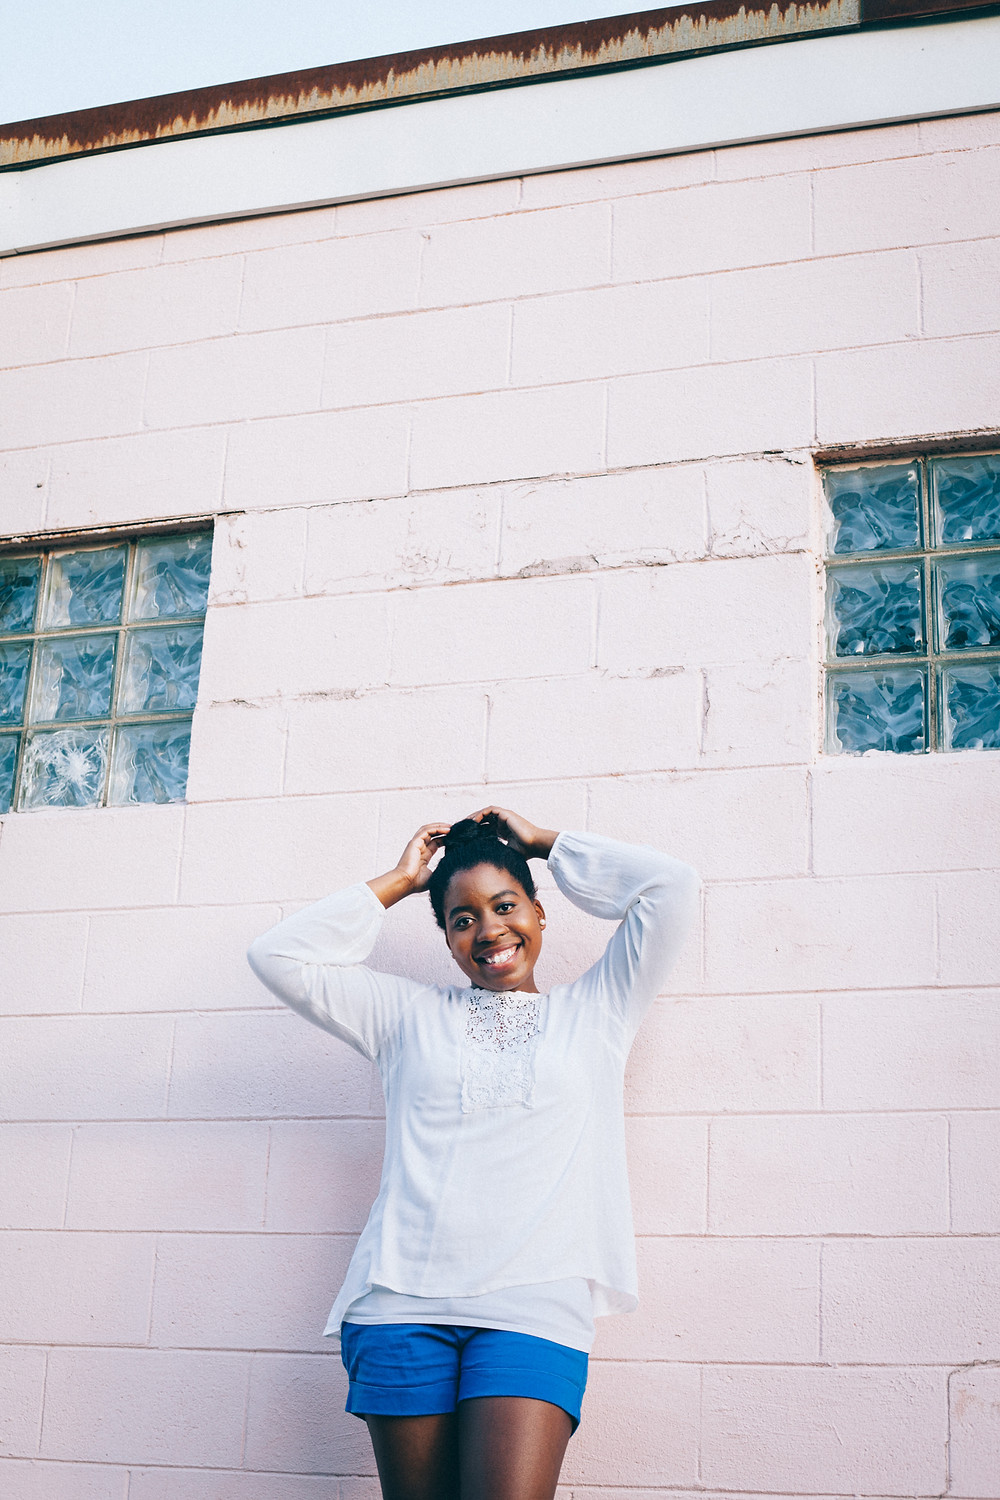 blog lifestyle blog women empowerment strong mental health depression anxiety community beauty self love care fitness exercise yoga fashion relationships wellness beauty she is balanced black girl beauty